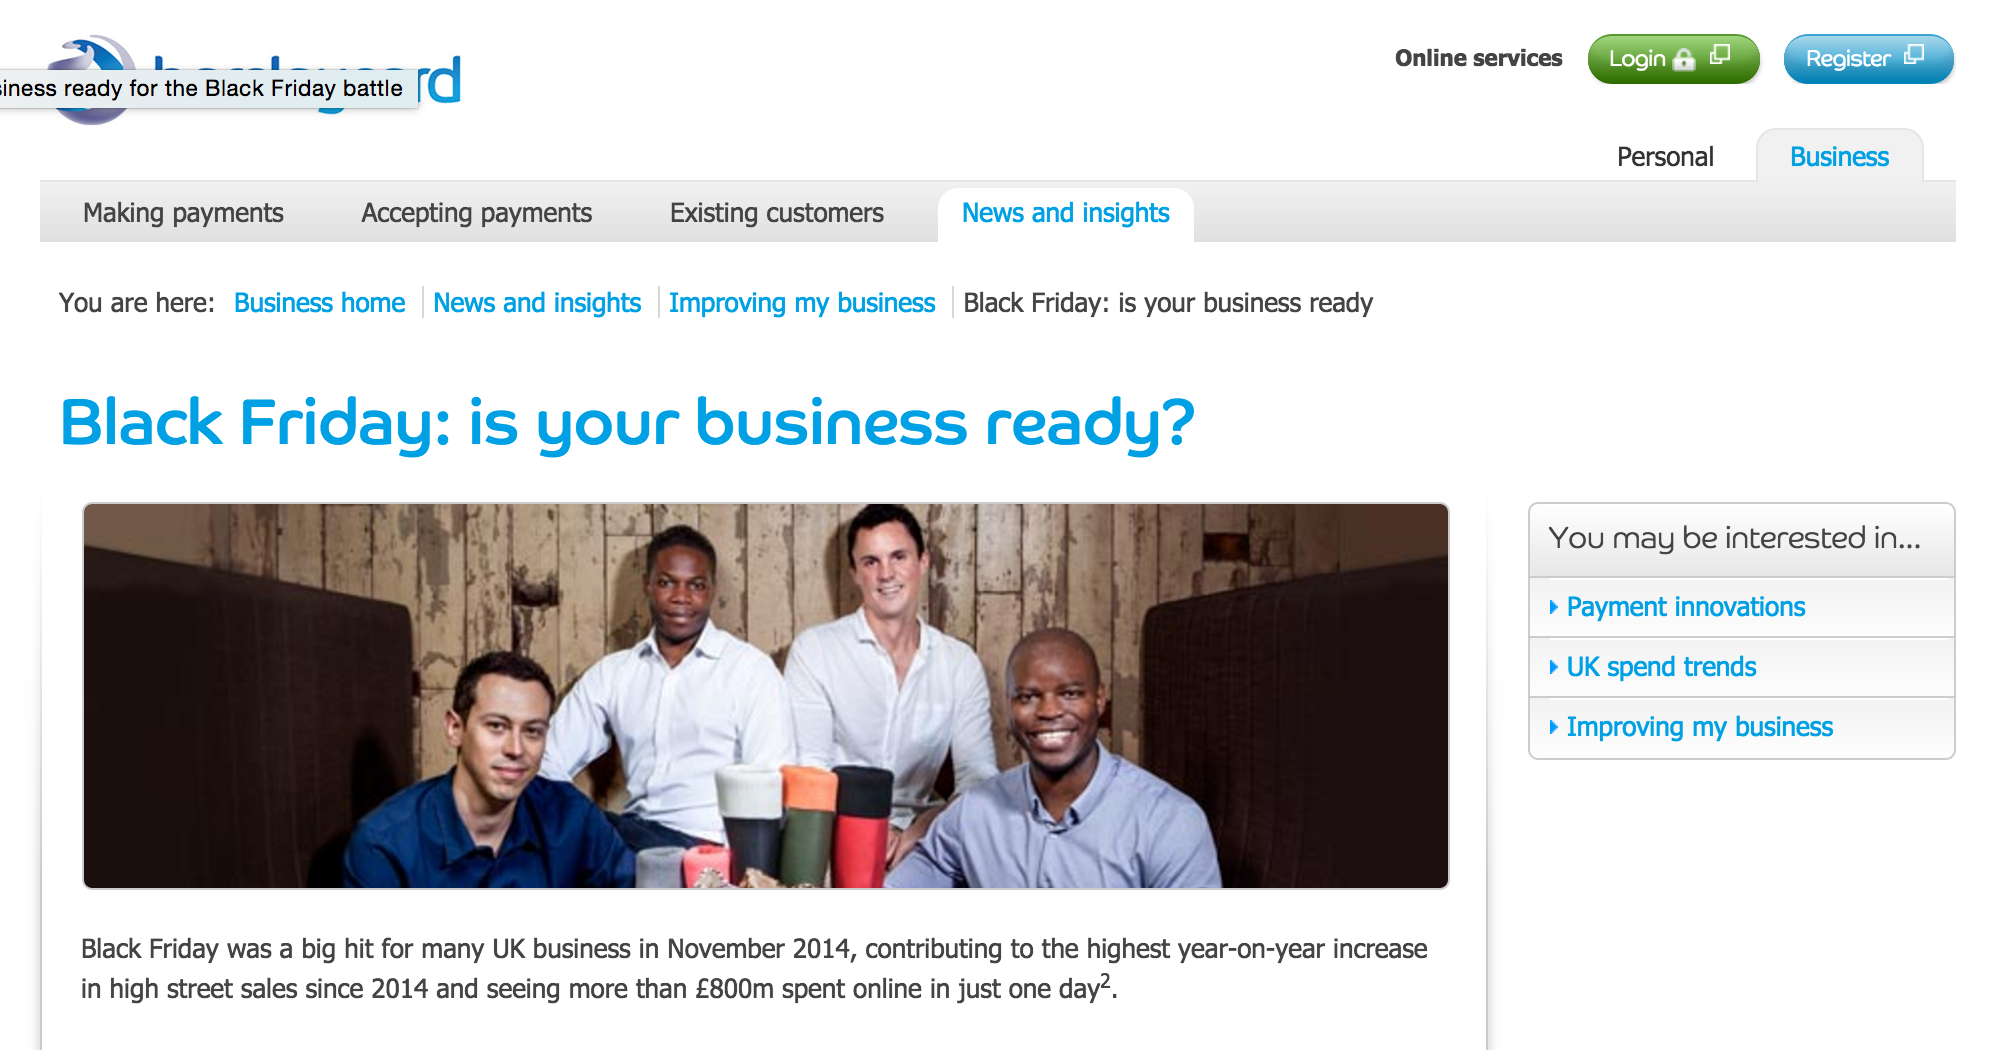 barclaycard news and insights black friday articles